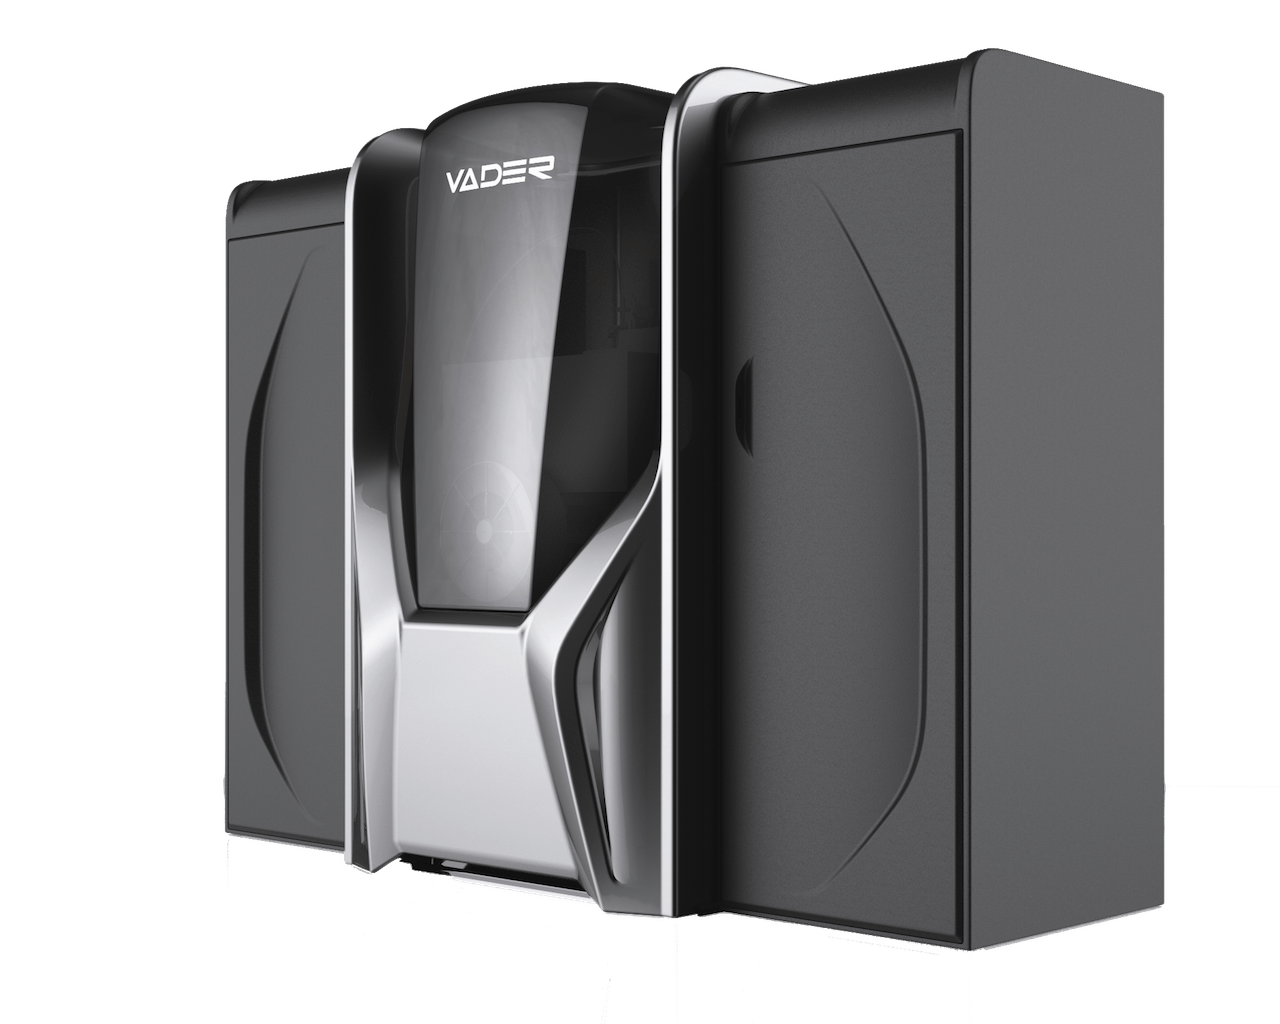 The Vader Systems MK1 Experimental 3D metal printer